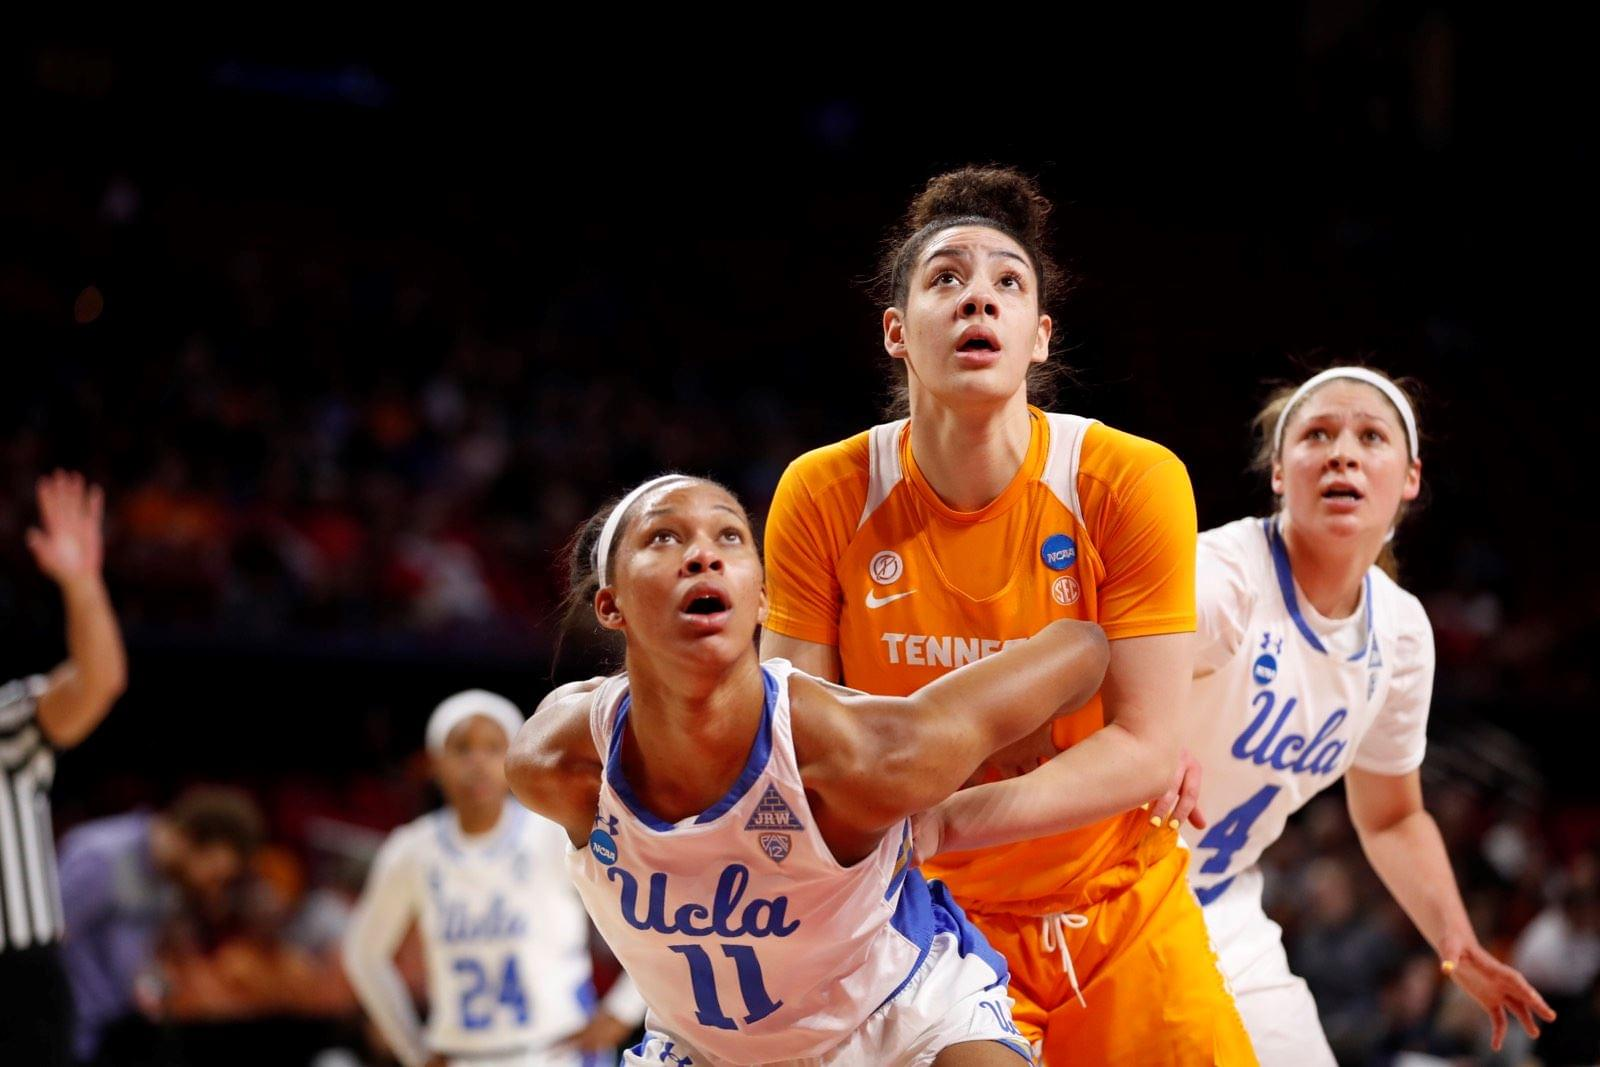 Lady Vols Fall to No. 20/24 UCLA, 89-77